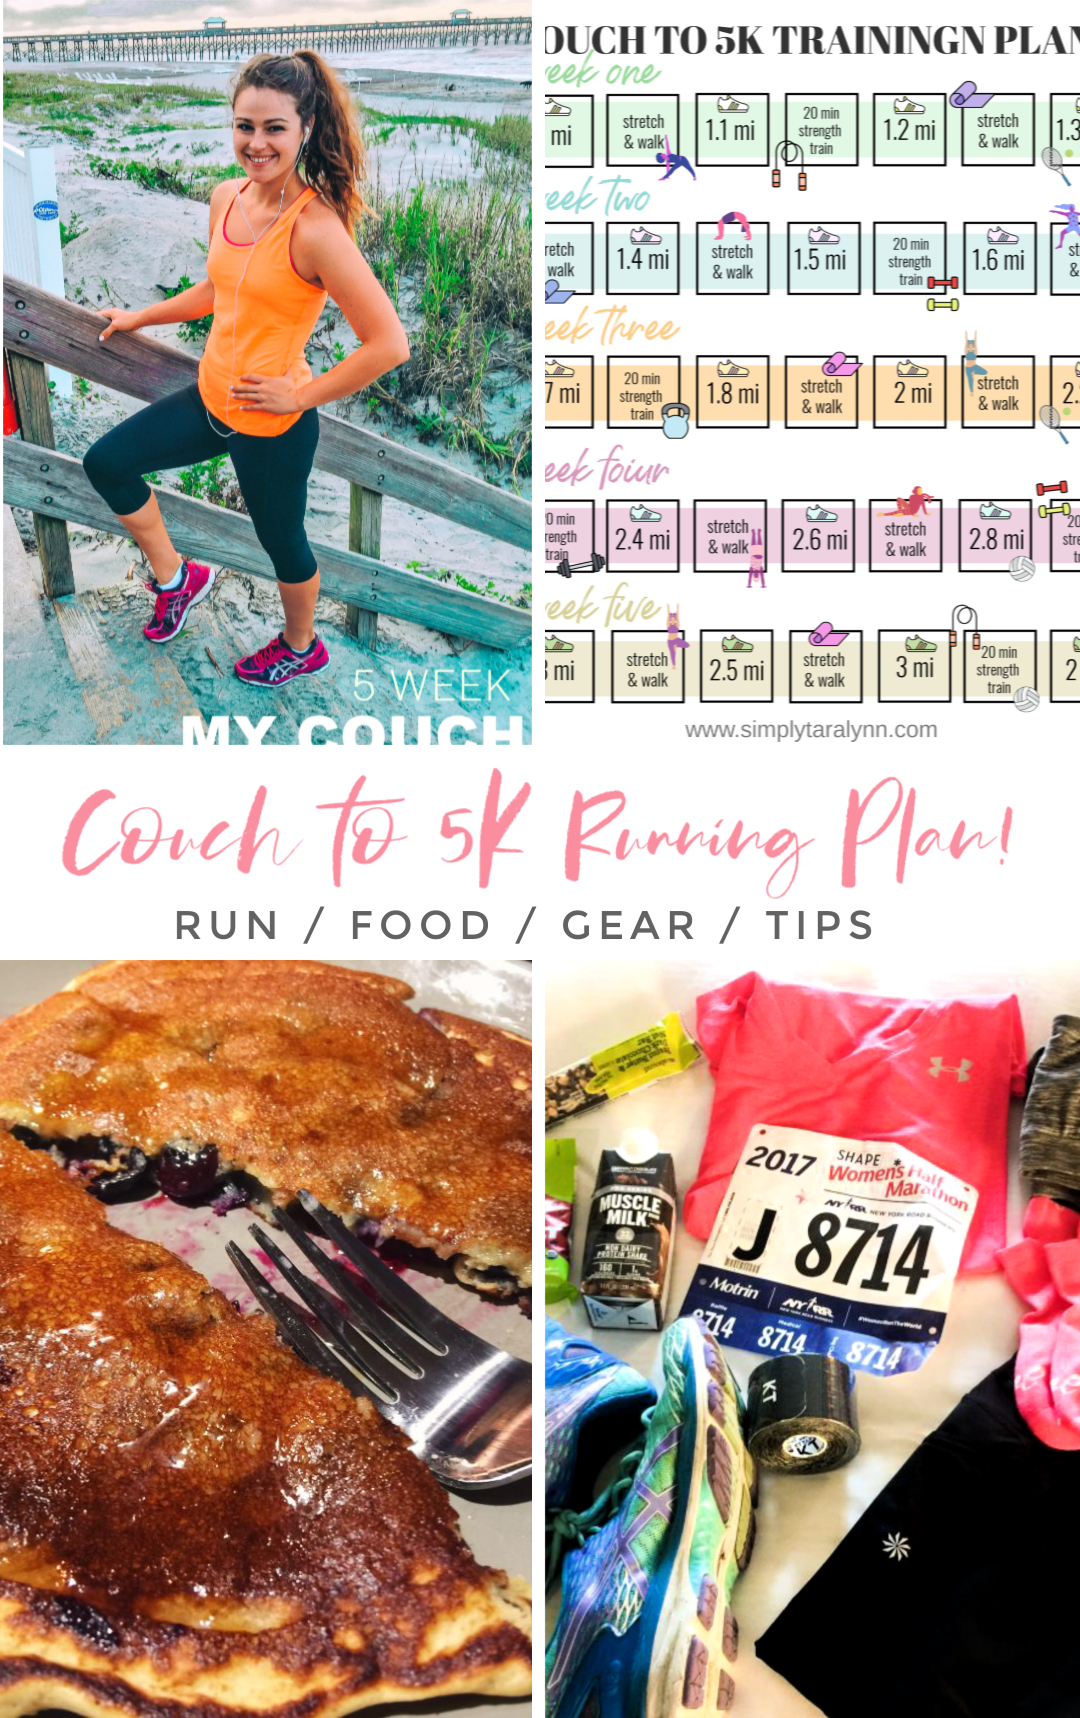 couch to 5k, five k, running three miles, how to run, beginners , 5k training plan, running food, pre workout, what to eat before a race, what to eat after a race, how to train fo ra run